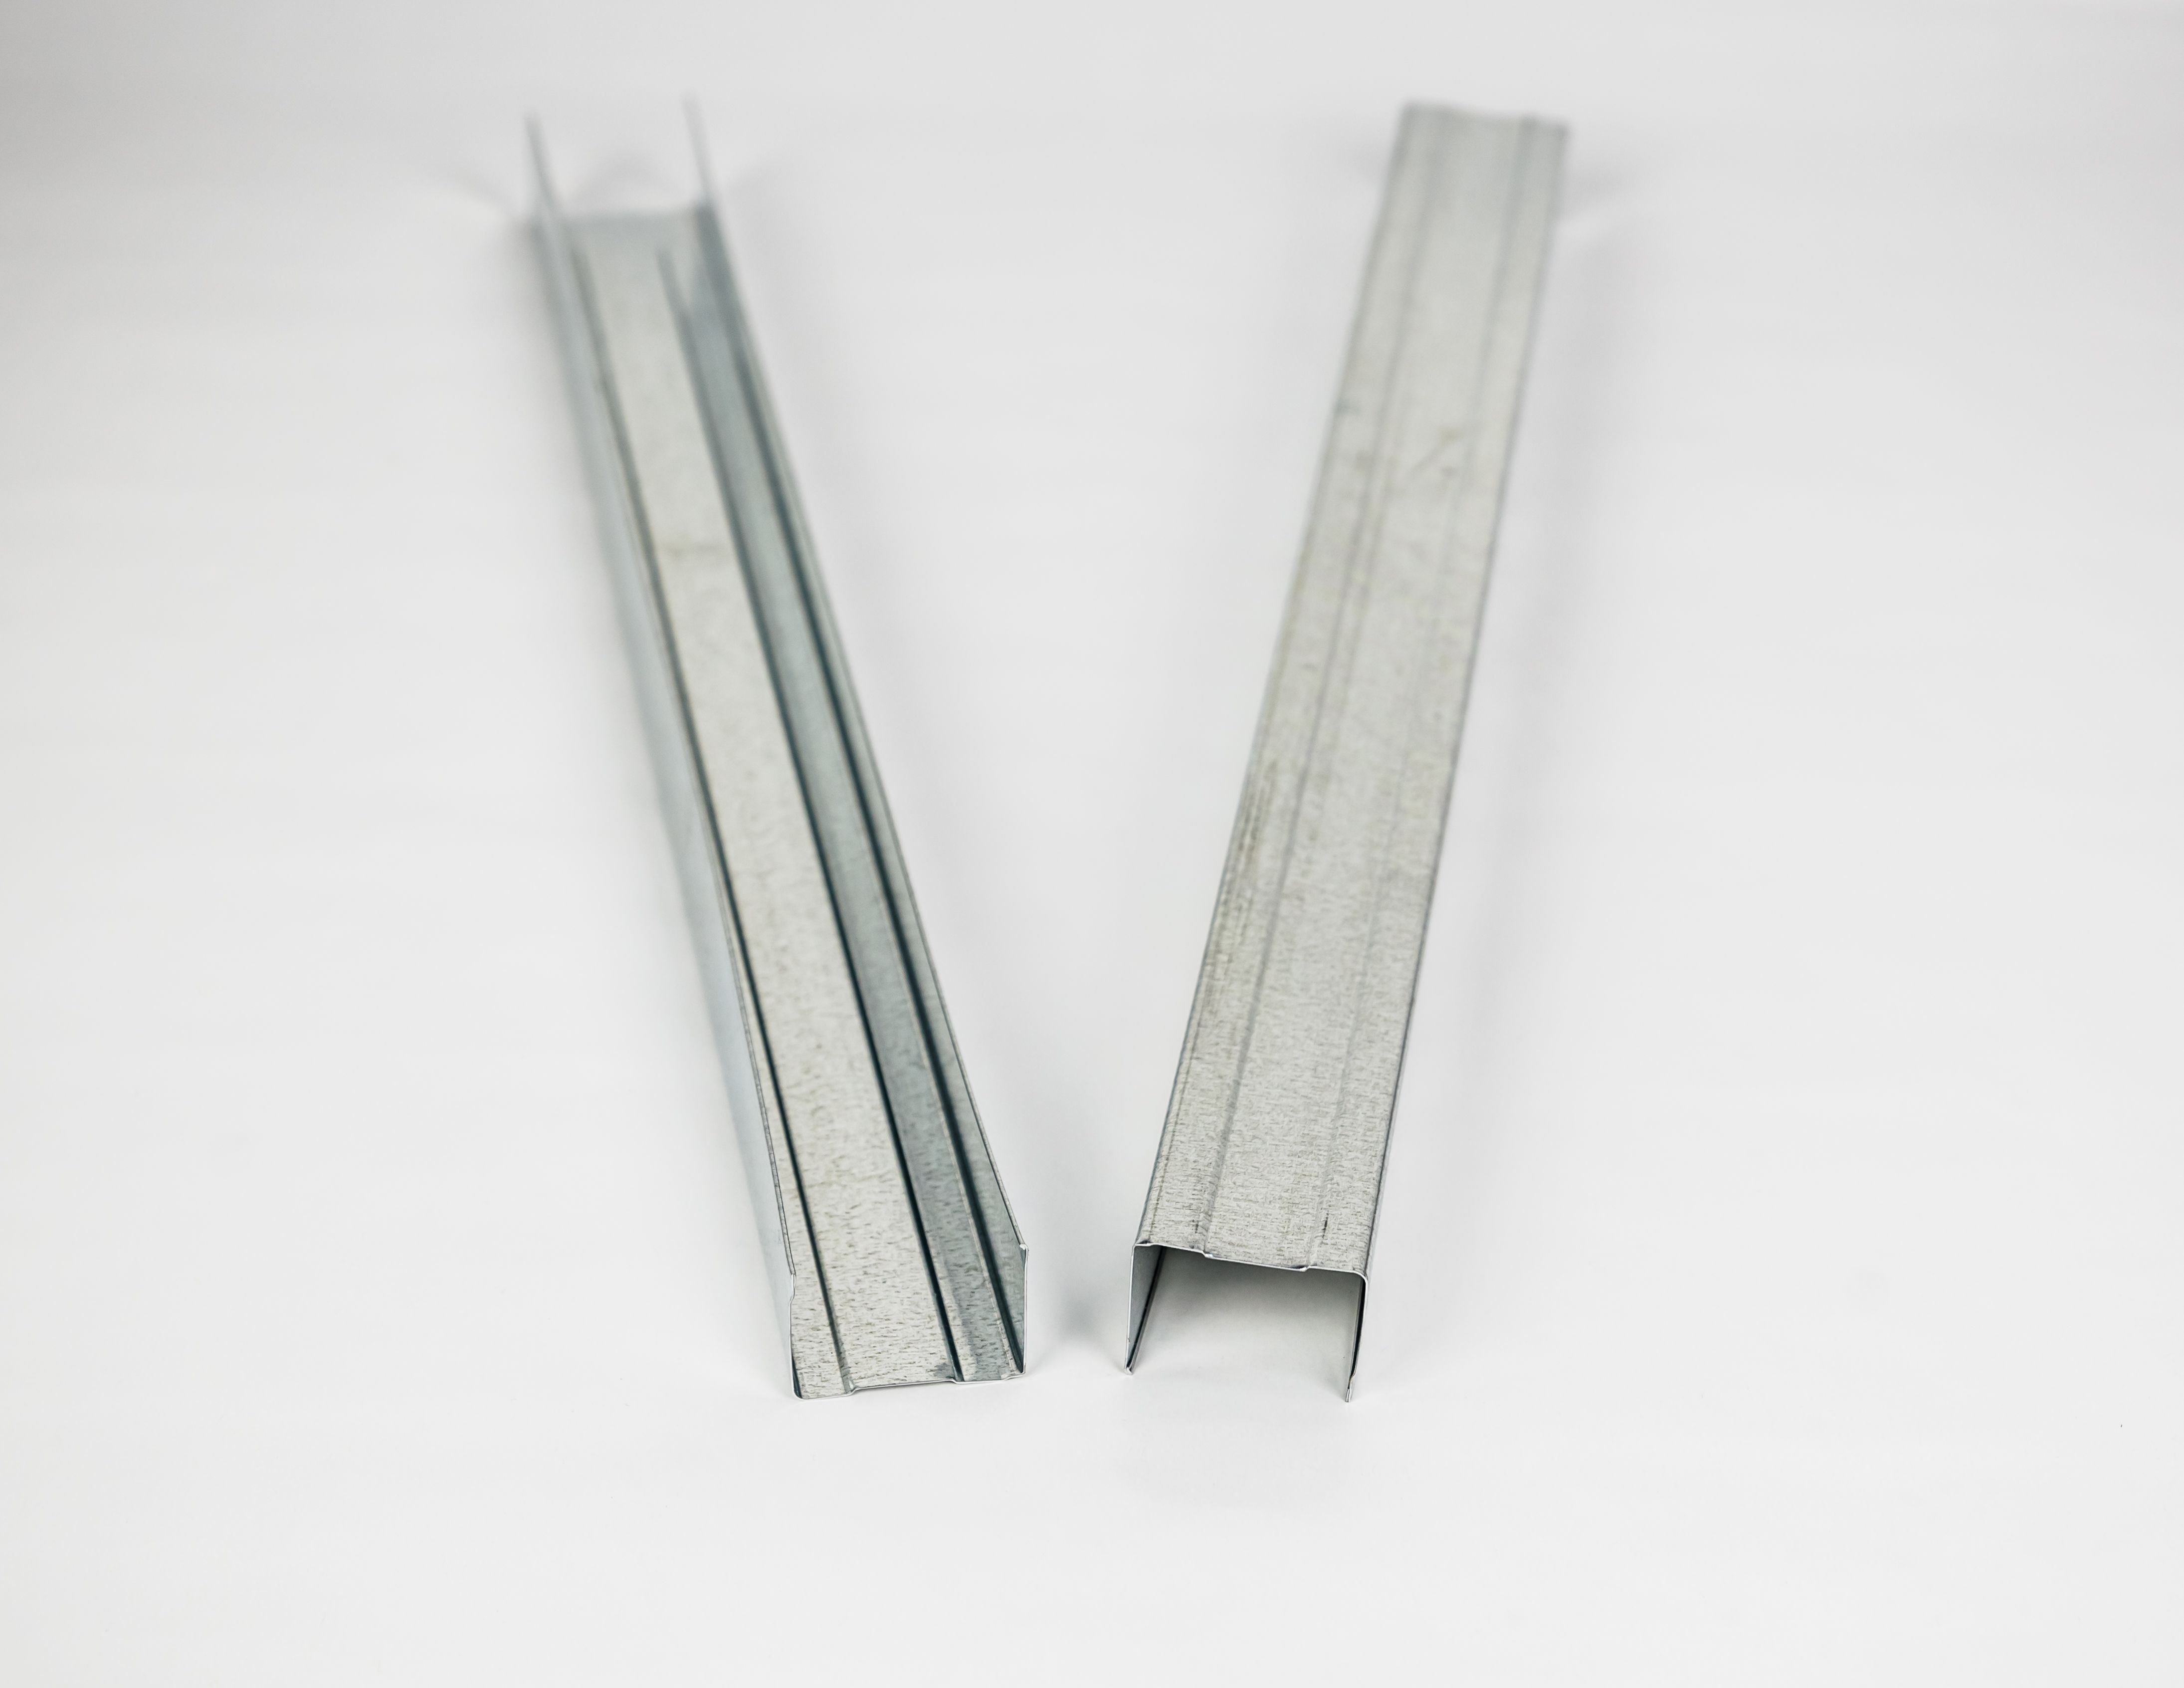 Pin On Steel Framing Slotted Track System Drywall Furring Channel Resilient Channel